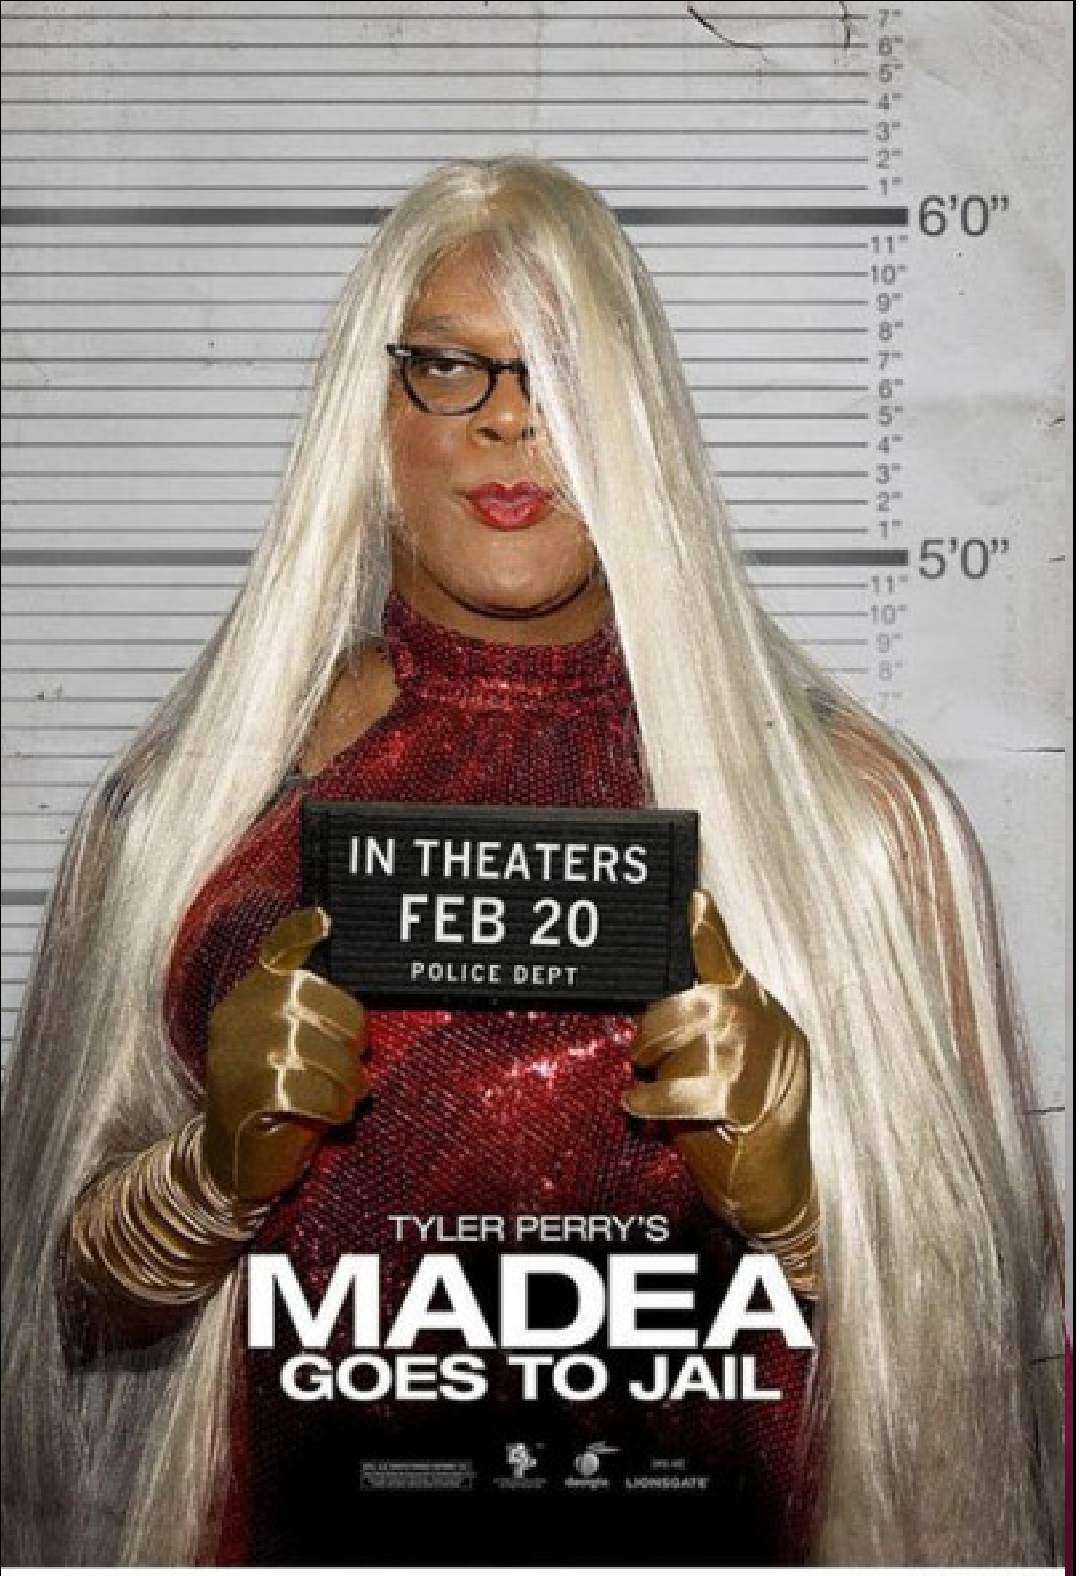 Shaved woman madea goes to jail